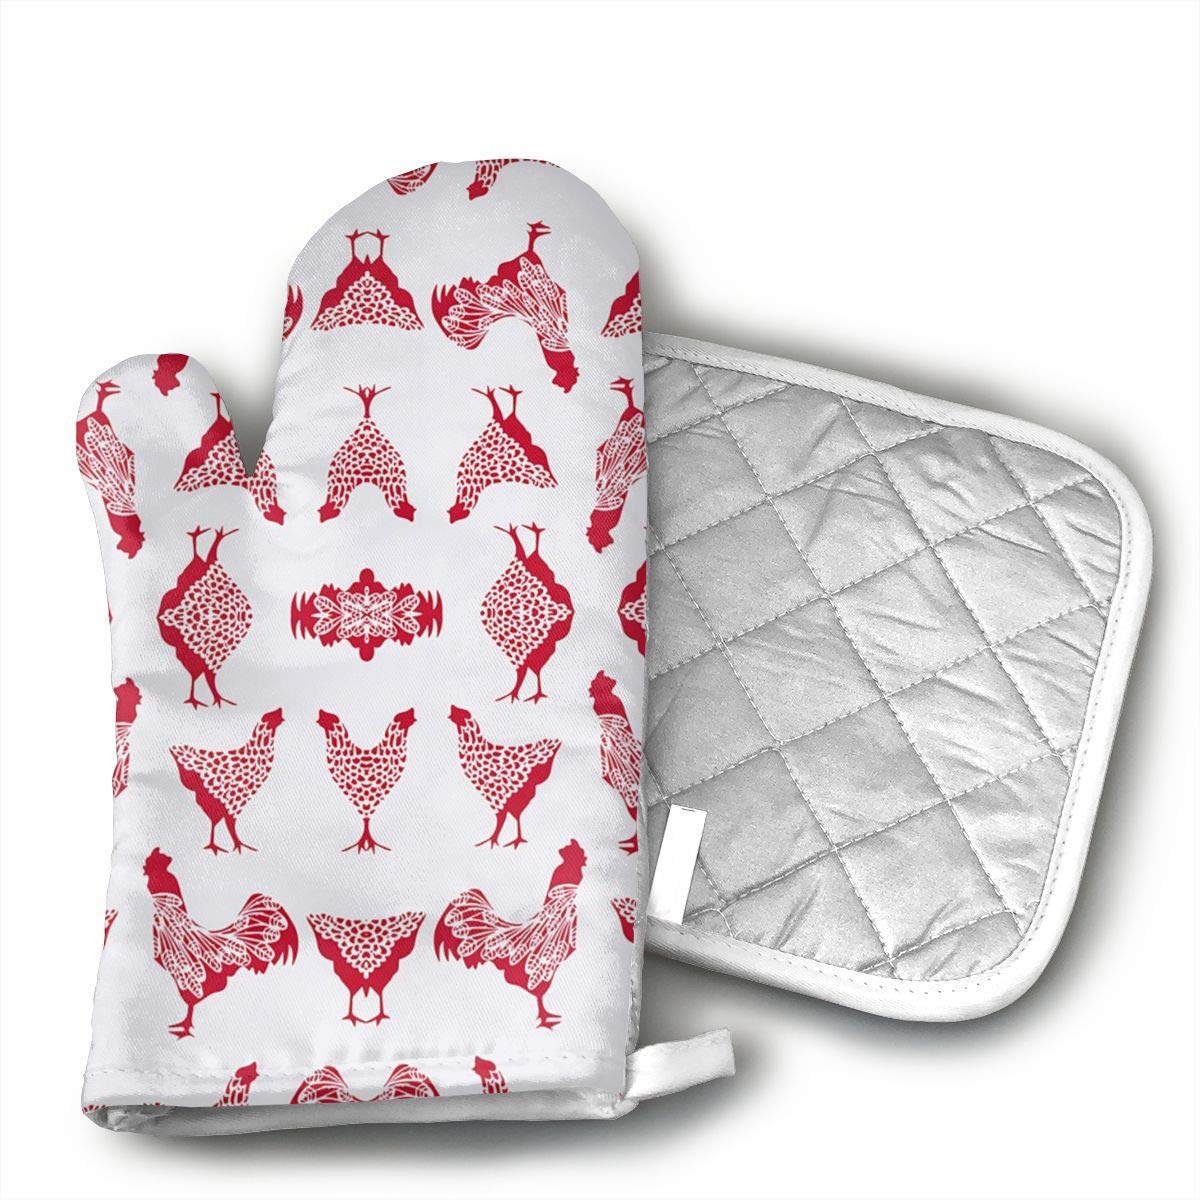 HAIQLK Chicken Red On White Oven Mitts of Quilted Cotton Lining - Heat Resistant Kitchen Gloves,Flame Oven Mitt Set